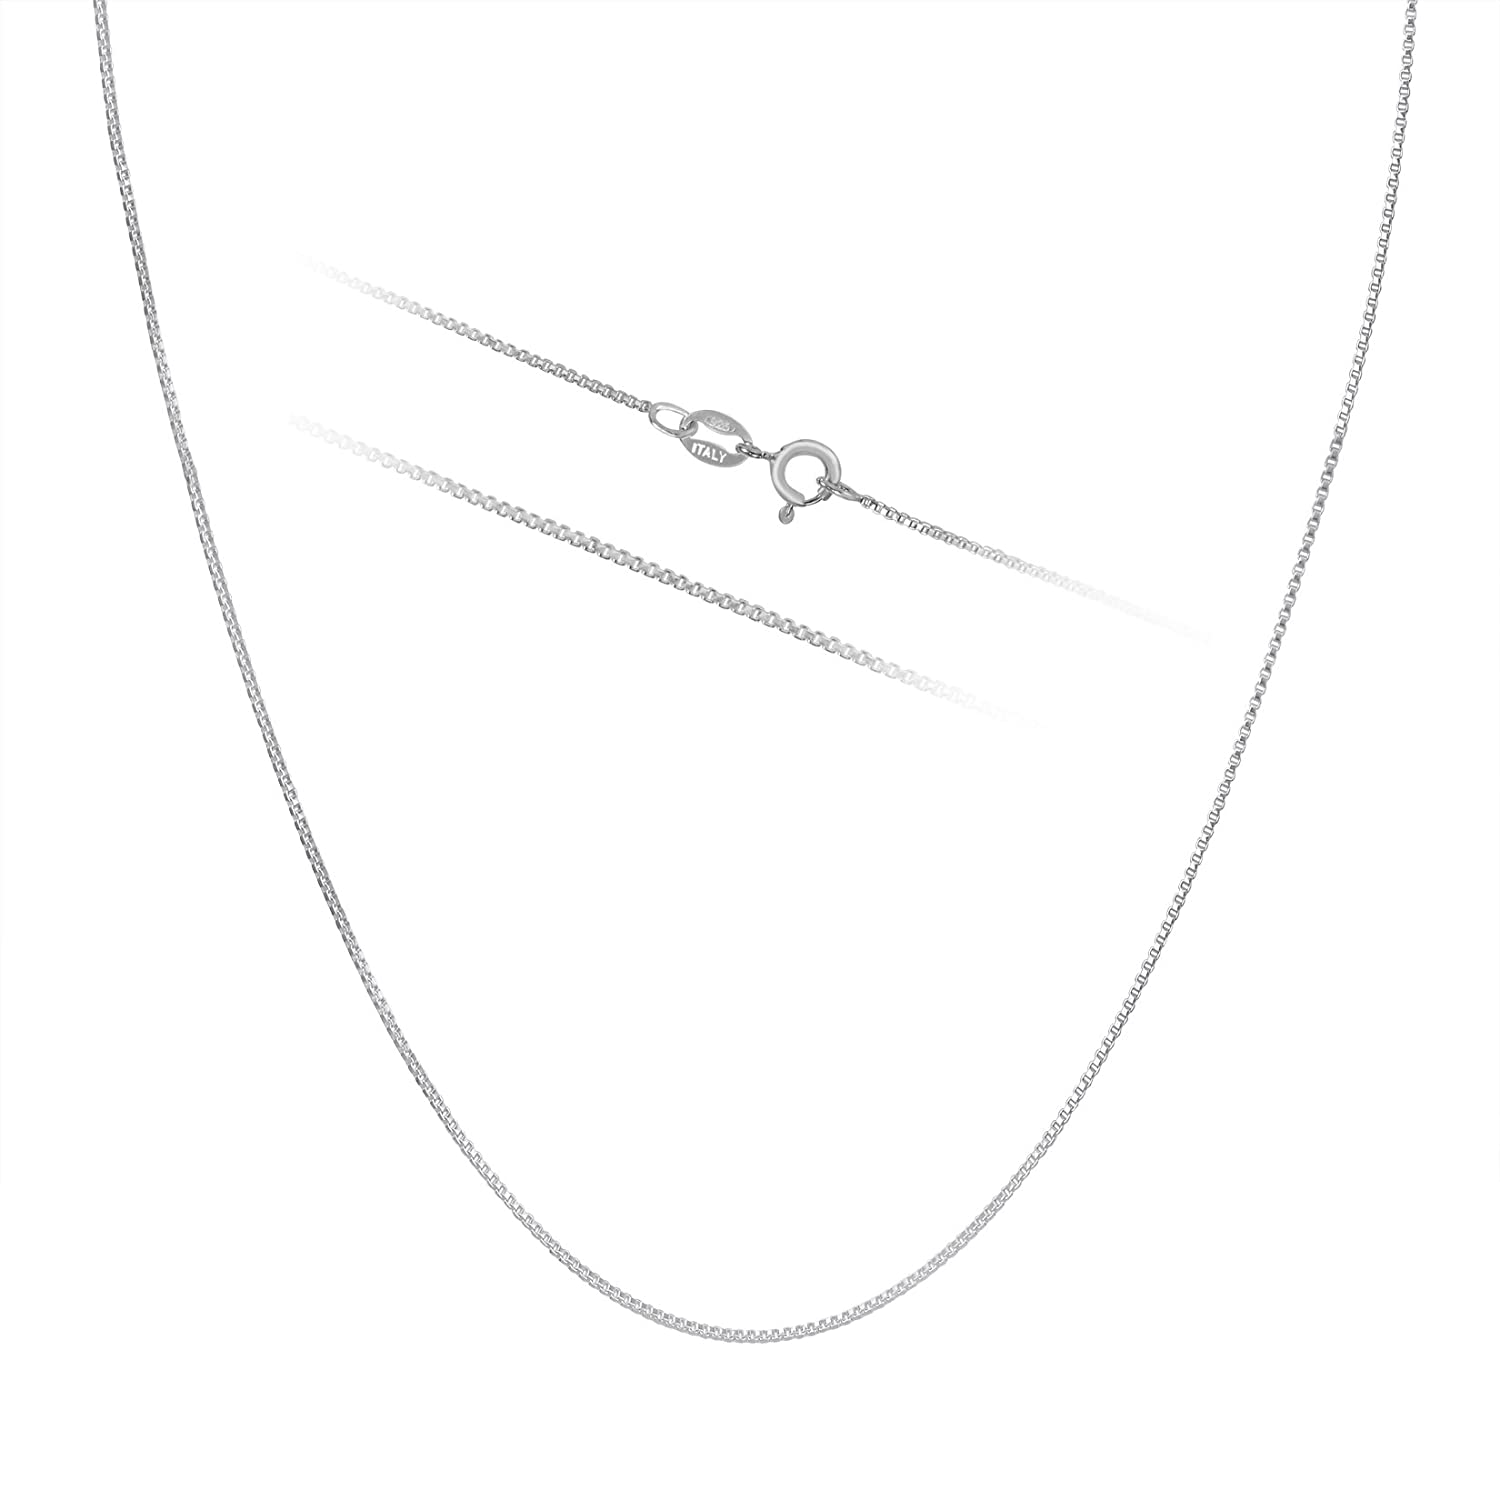 Timoo 925 Sterling Silver 0.8mm Box Chain Super Thin Strong Italian Crafted Necklace 14-36 inches Ch6frzxQ